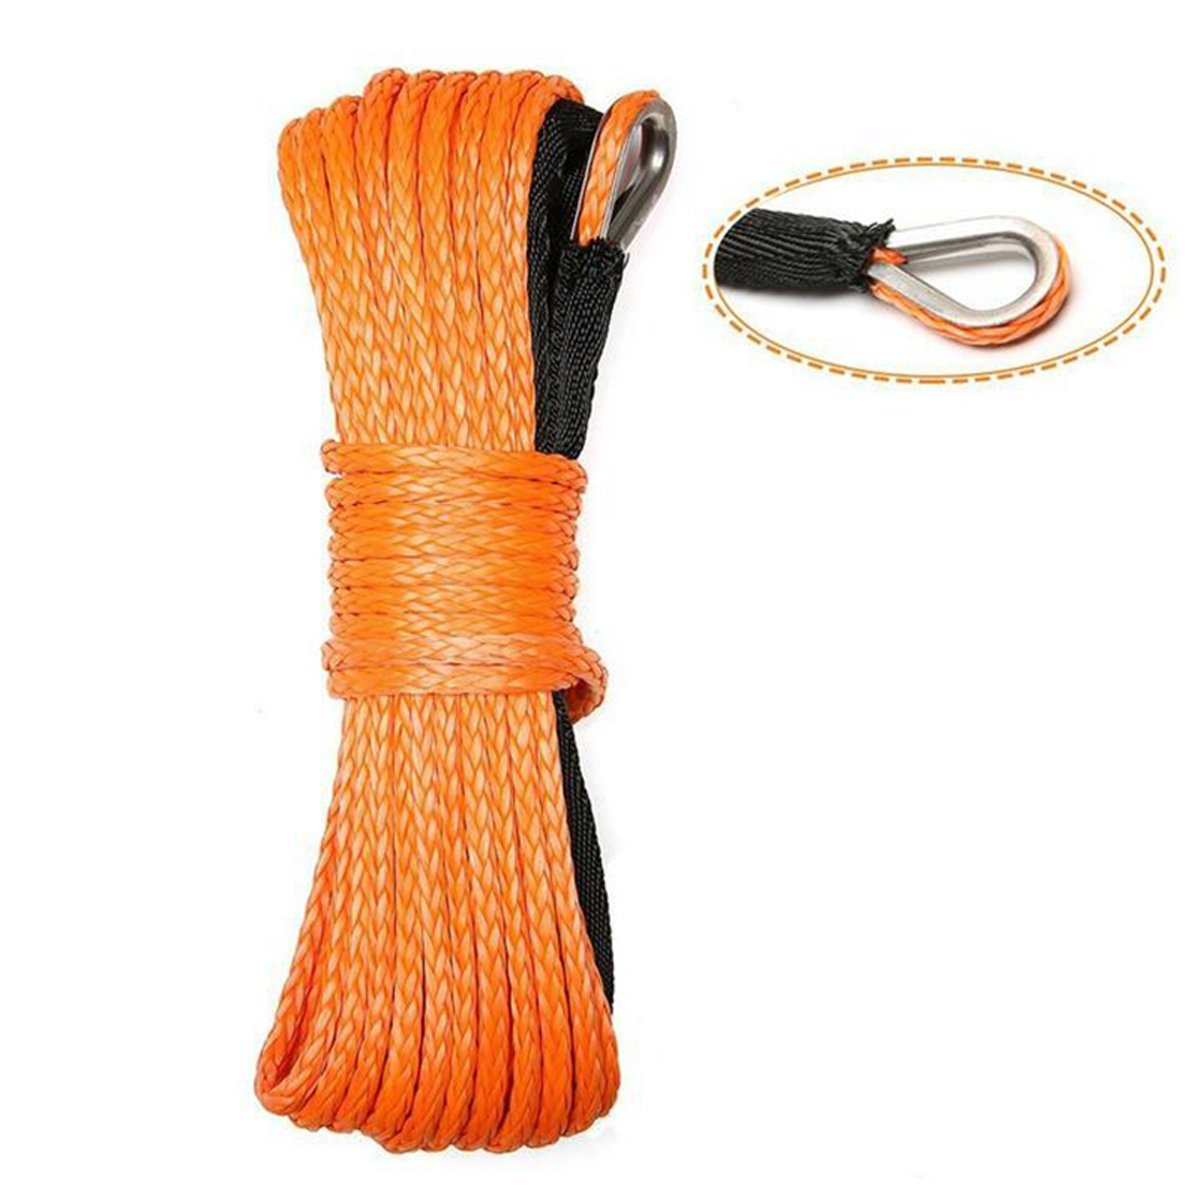 MOEBULB Car Synthetic Winch Rope Kit 5700+LBs 50'x1/4'' Winch Line Cable Sheath Winches ATV UTV SUV Truck Boat Ramsey Stainless Steel Thimble (Orange) by MOEBULB (Image #1)